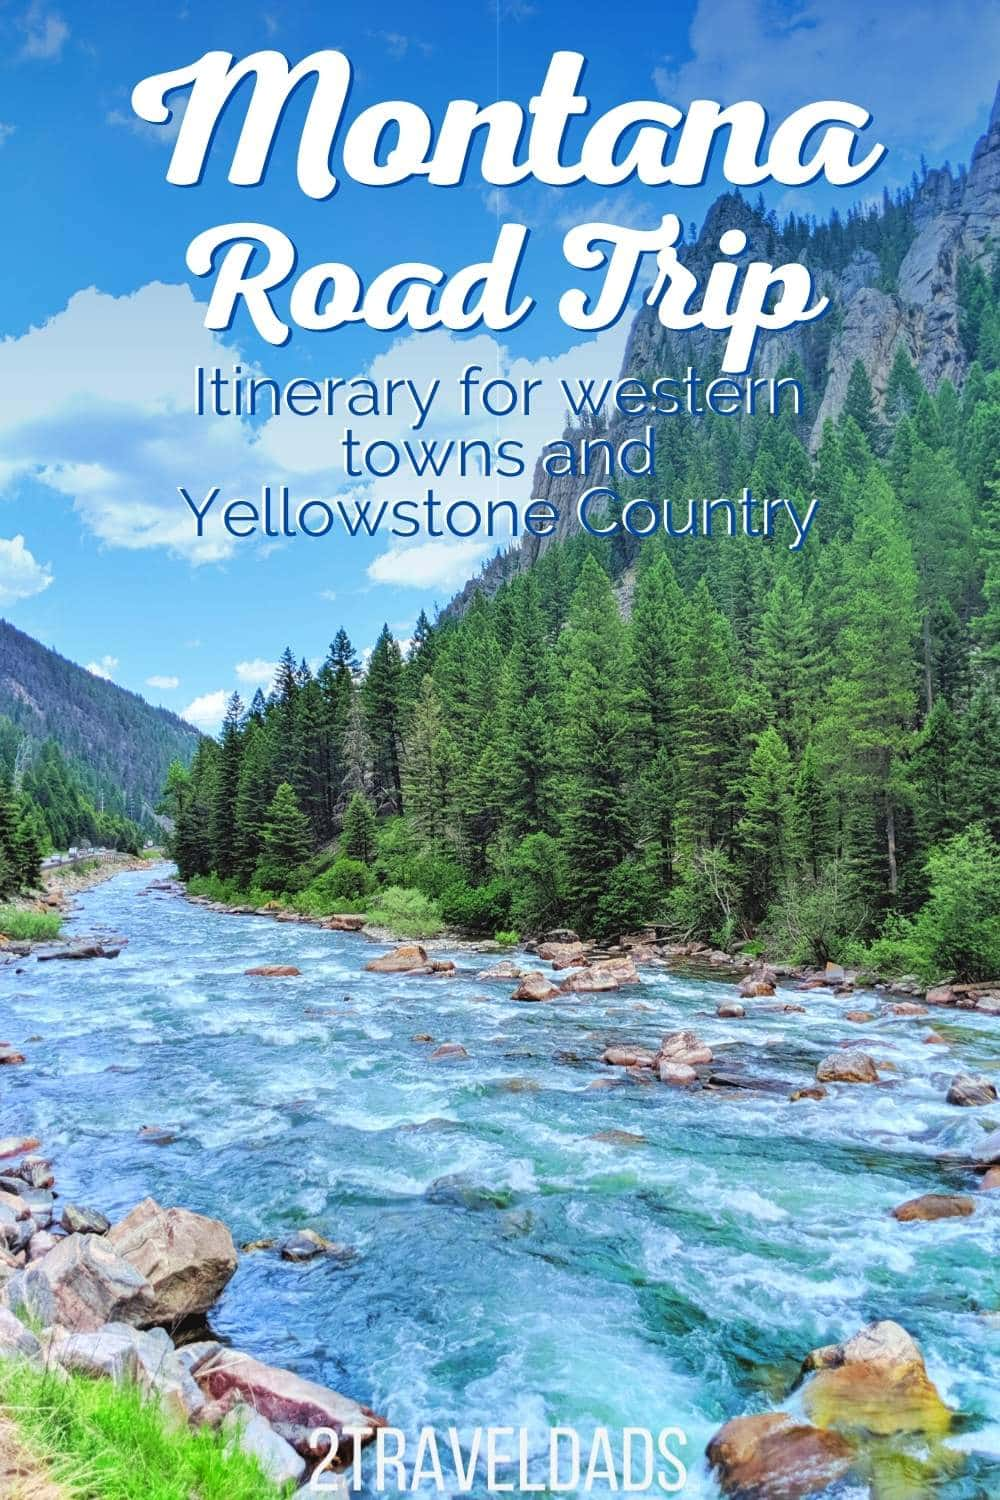 Montana Road Trip - Western Towns and Yellowstone Country